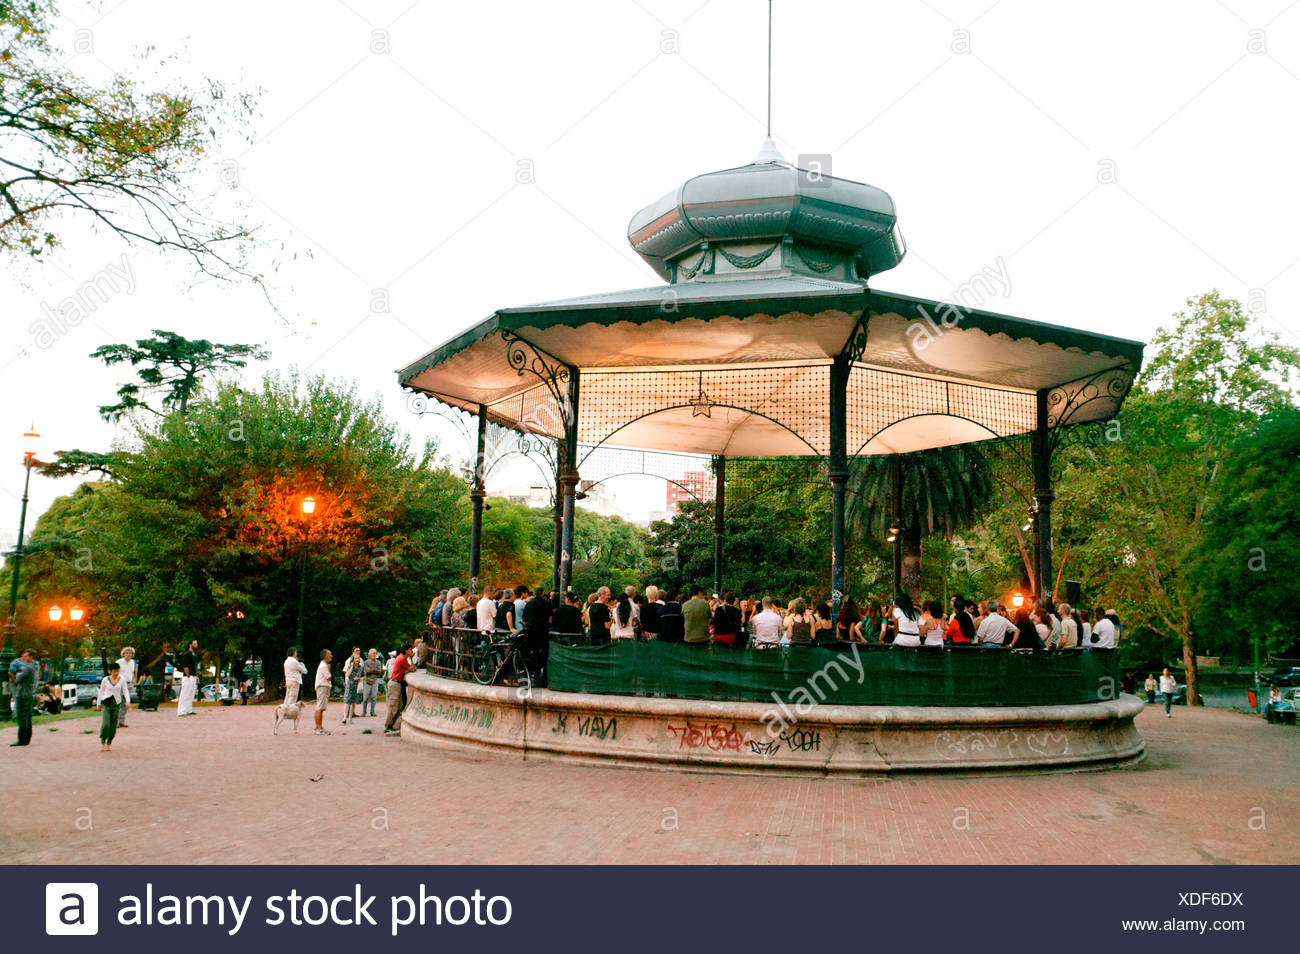 Pavilion, Milonga, Belgrano district, Buenos Aires, Argentina, South America - Stock Image